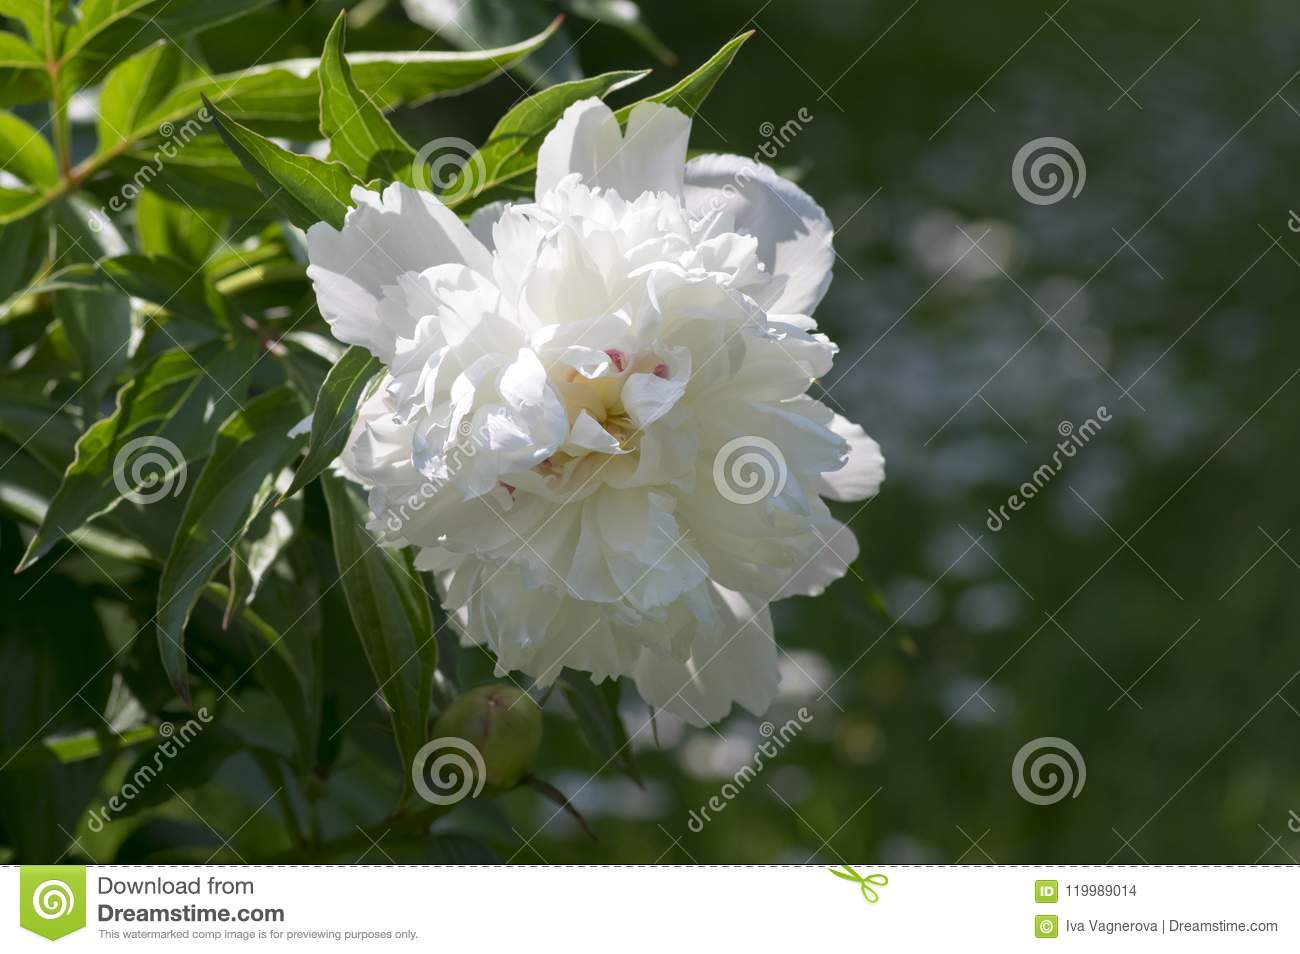 Paeonia Suffruticosa In Bloom With Double Flowers Green Shrub With